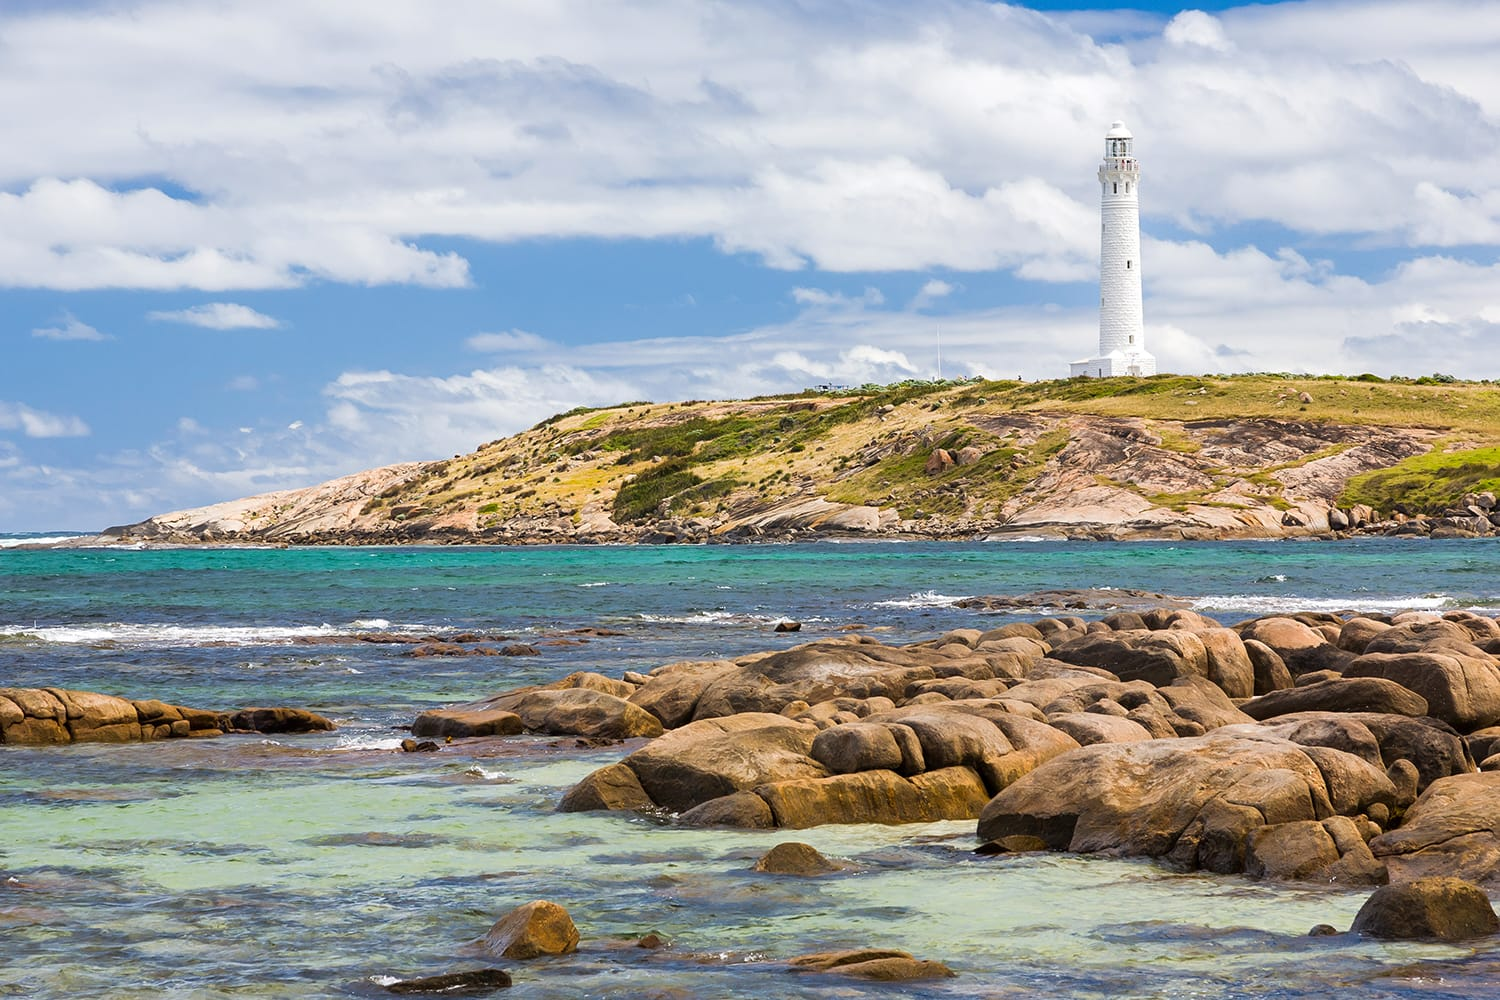 Beach at Cape Leeuwin with the lighthouse in the distance, Augusta Western Australia